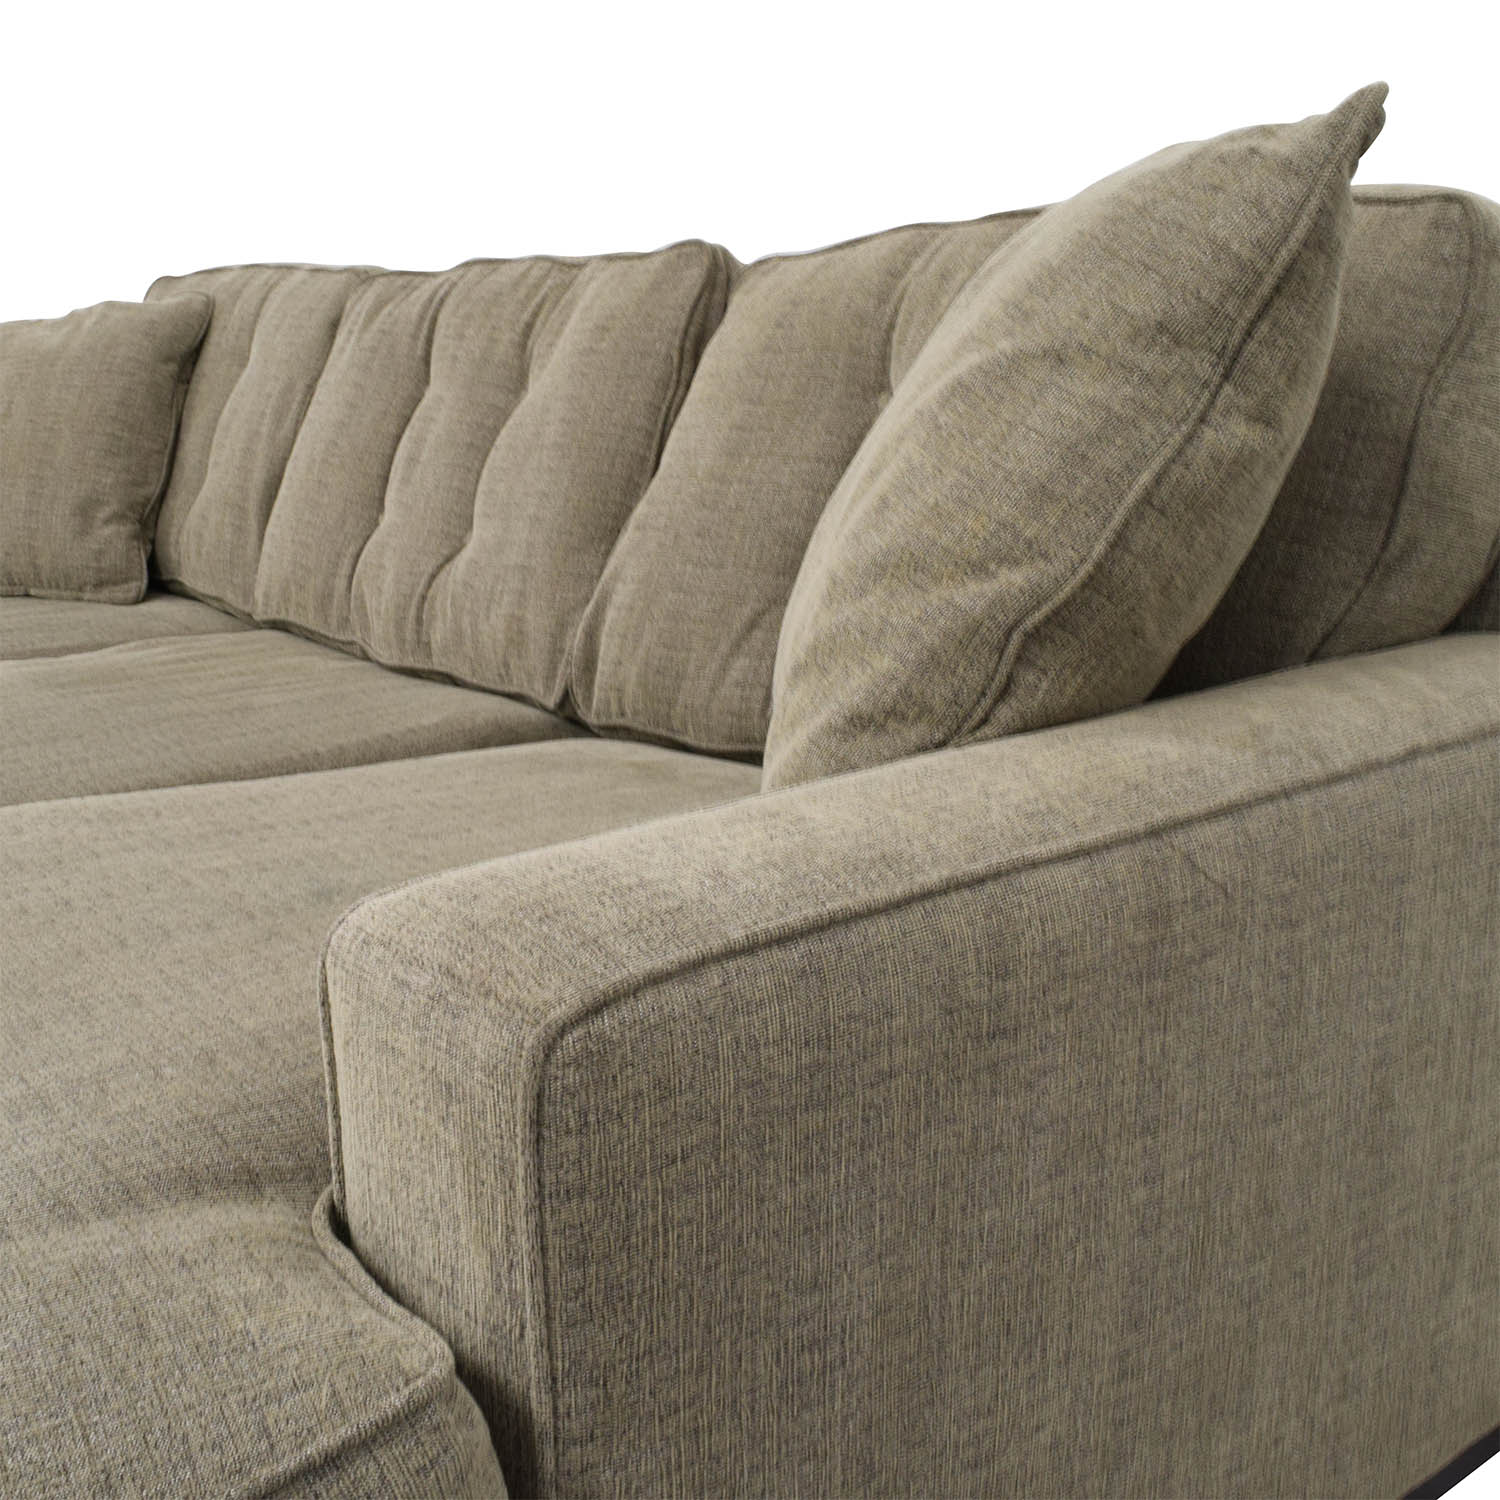 56% OFF Grey L Shaped Tufted Sectional with Right Chaise Sofas